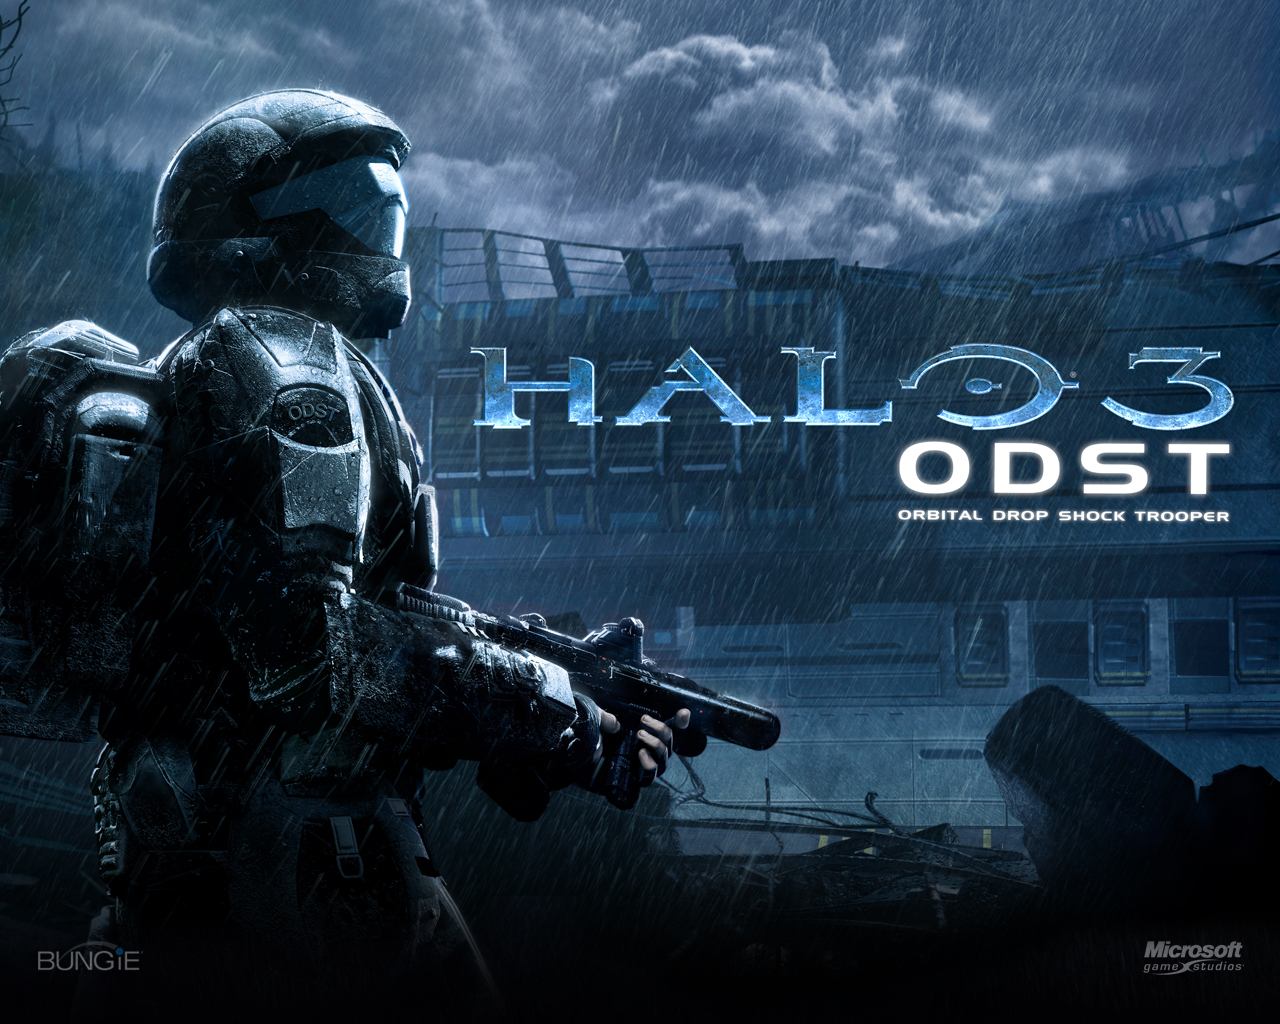 Games mania halo 3 - Halo odst images ...